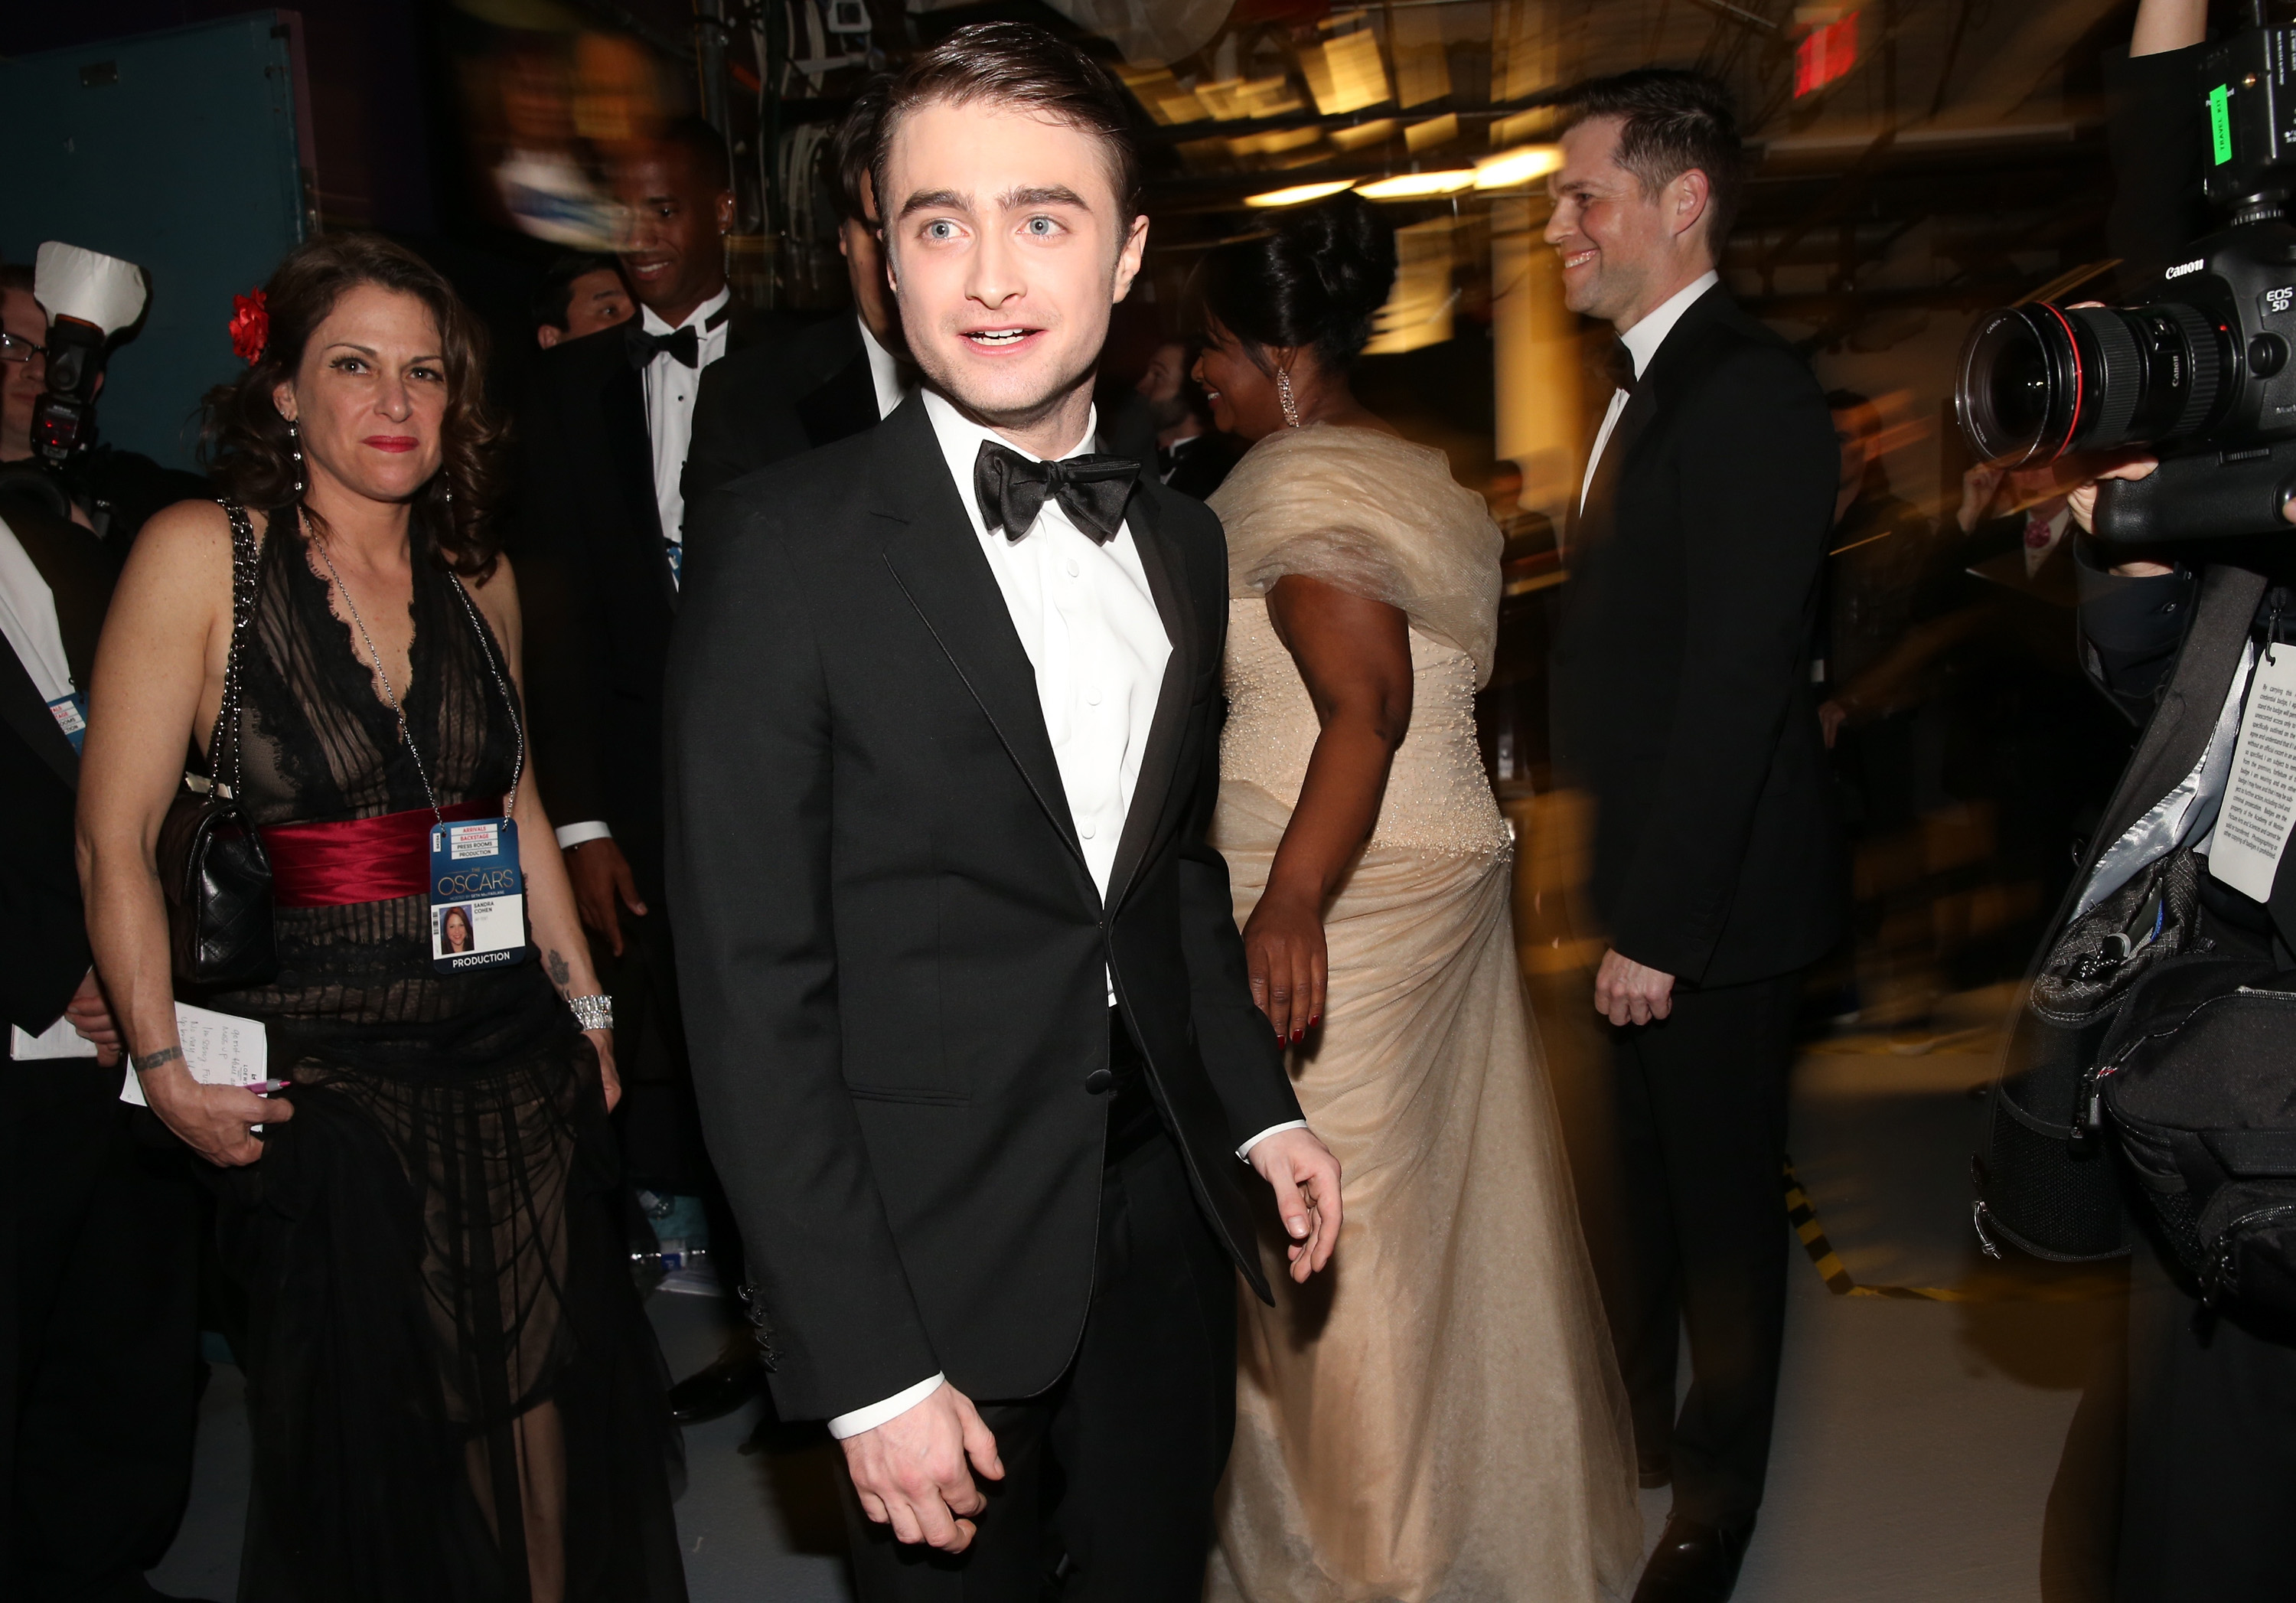 Daniel Radcliffe backstage at the 2013 Oscars.